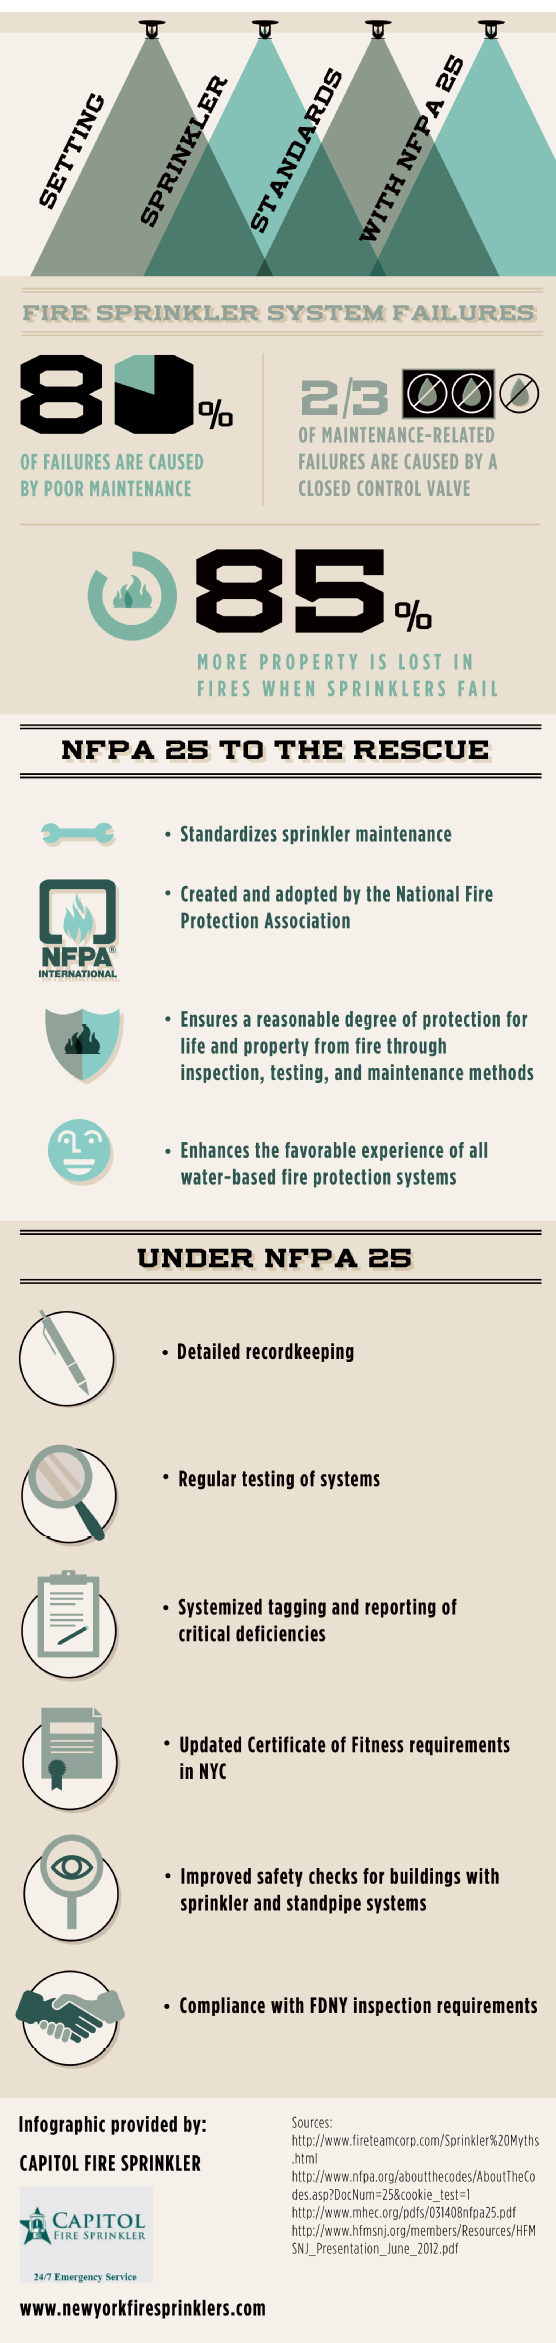 Capitol Fire Sprinkler NFPA25 Infographic